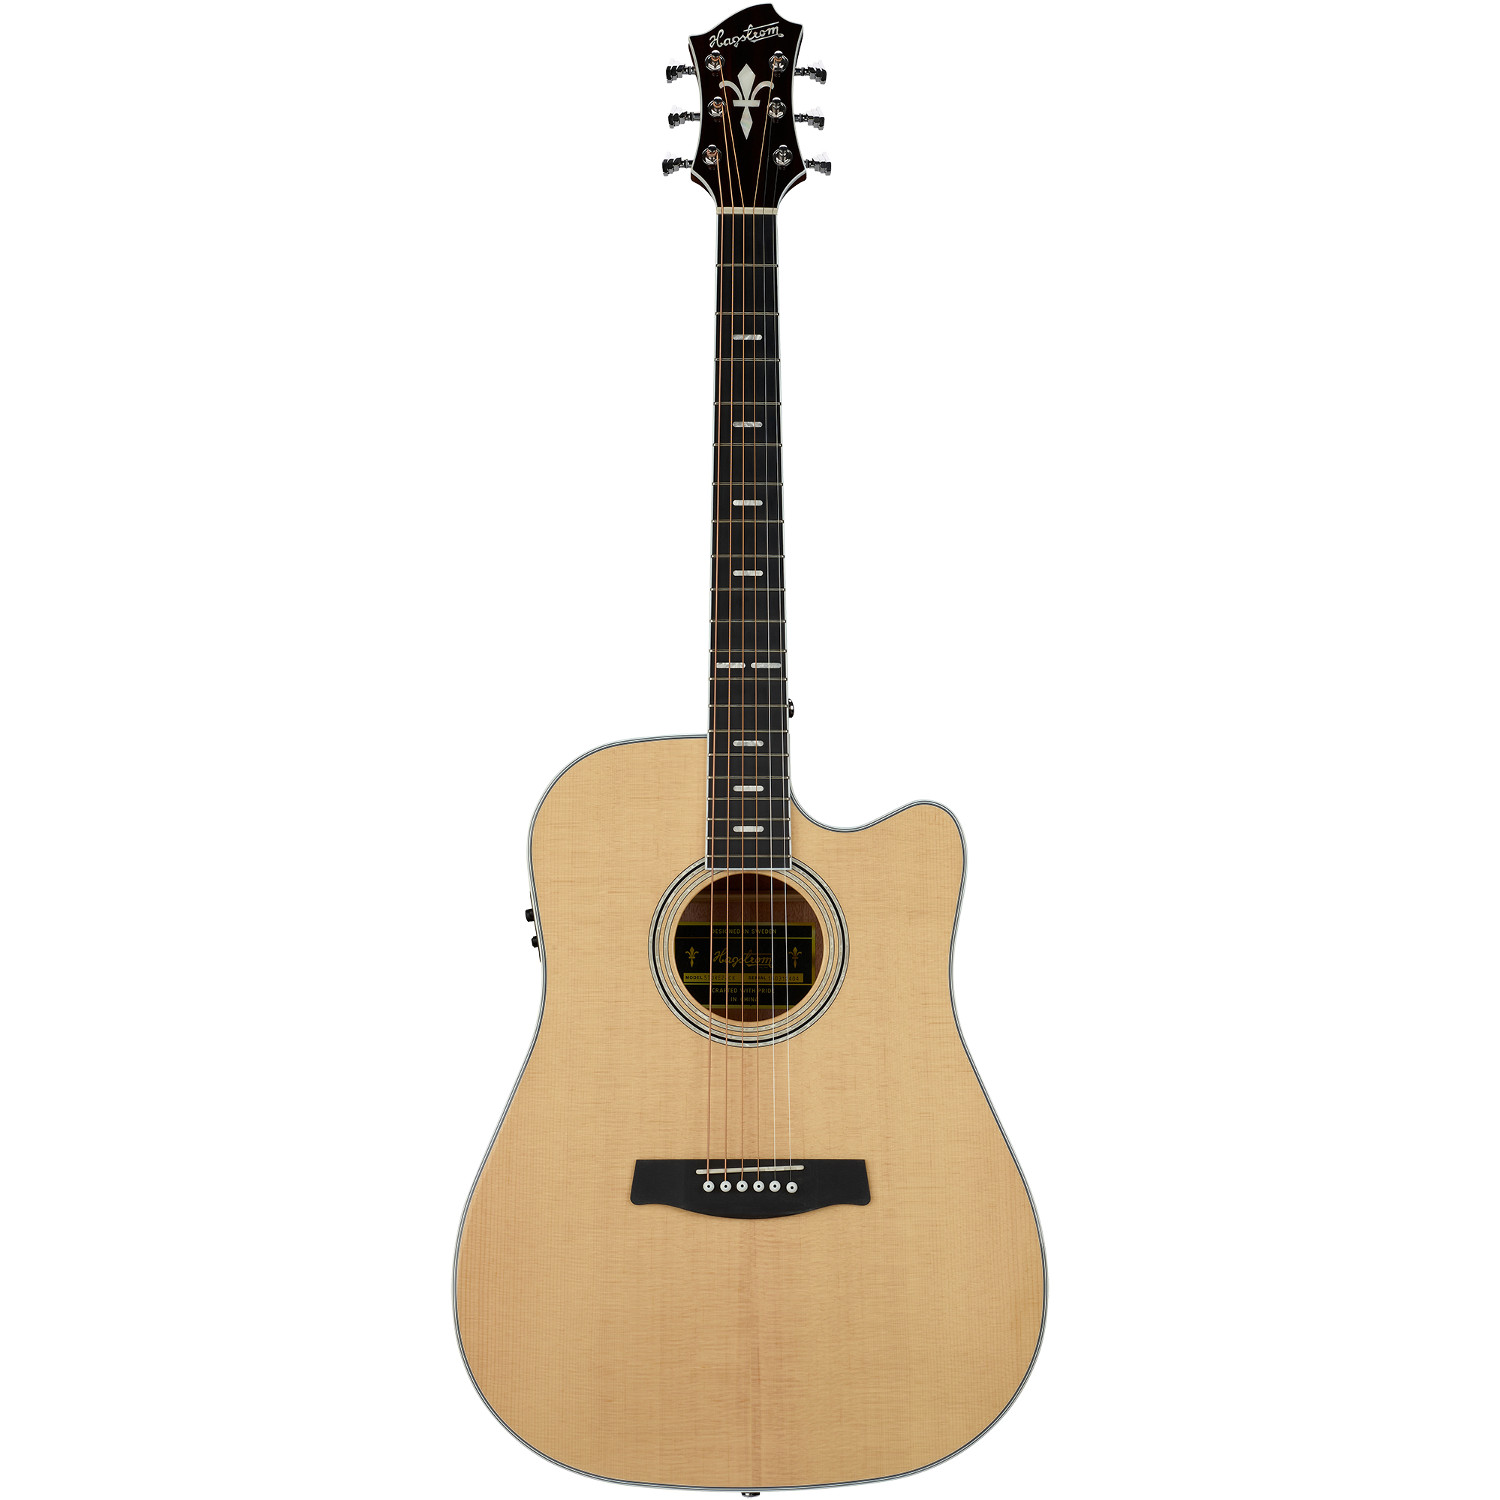 Hagstrom Siljan II Dreadnought CE Natural acoustic steel string guitar